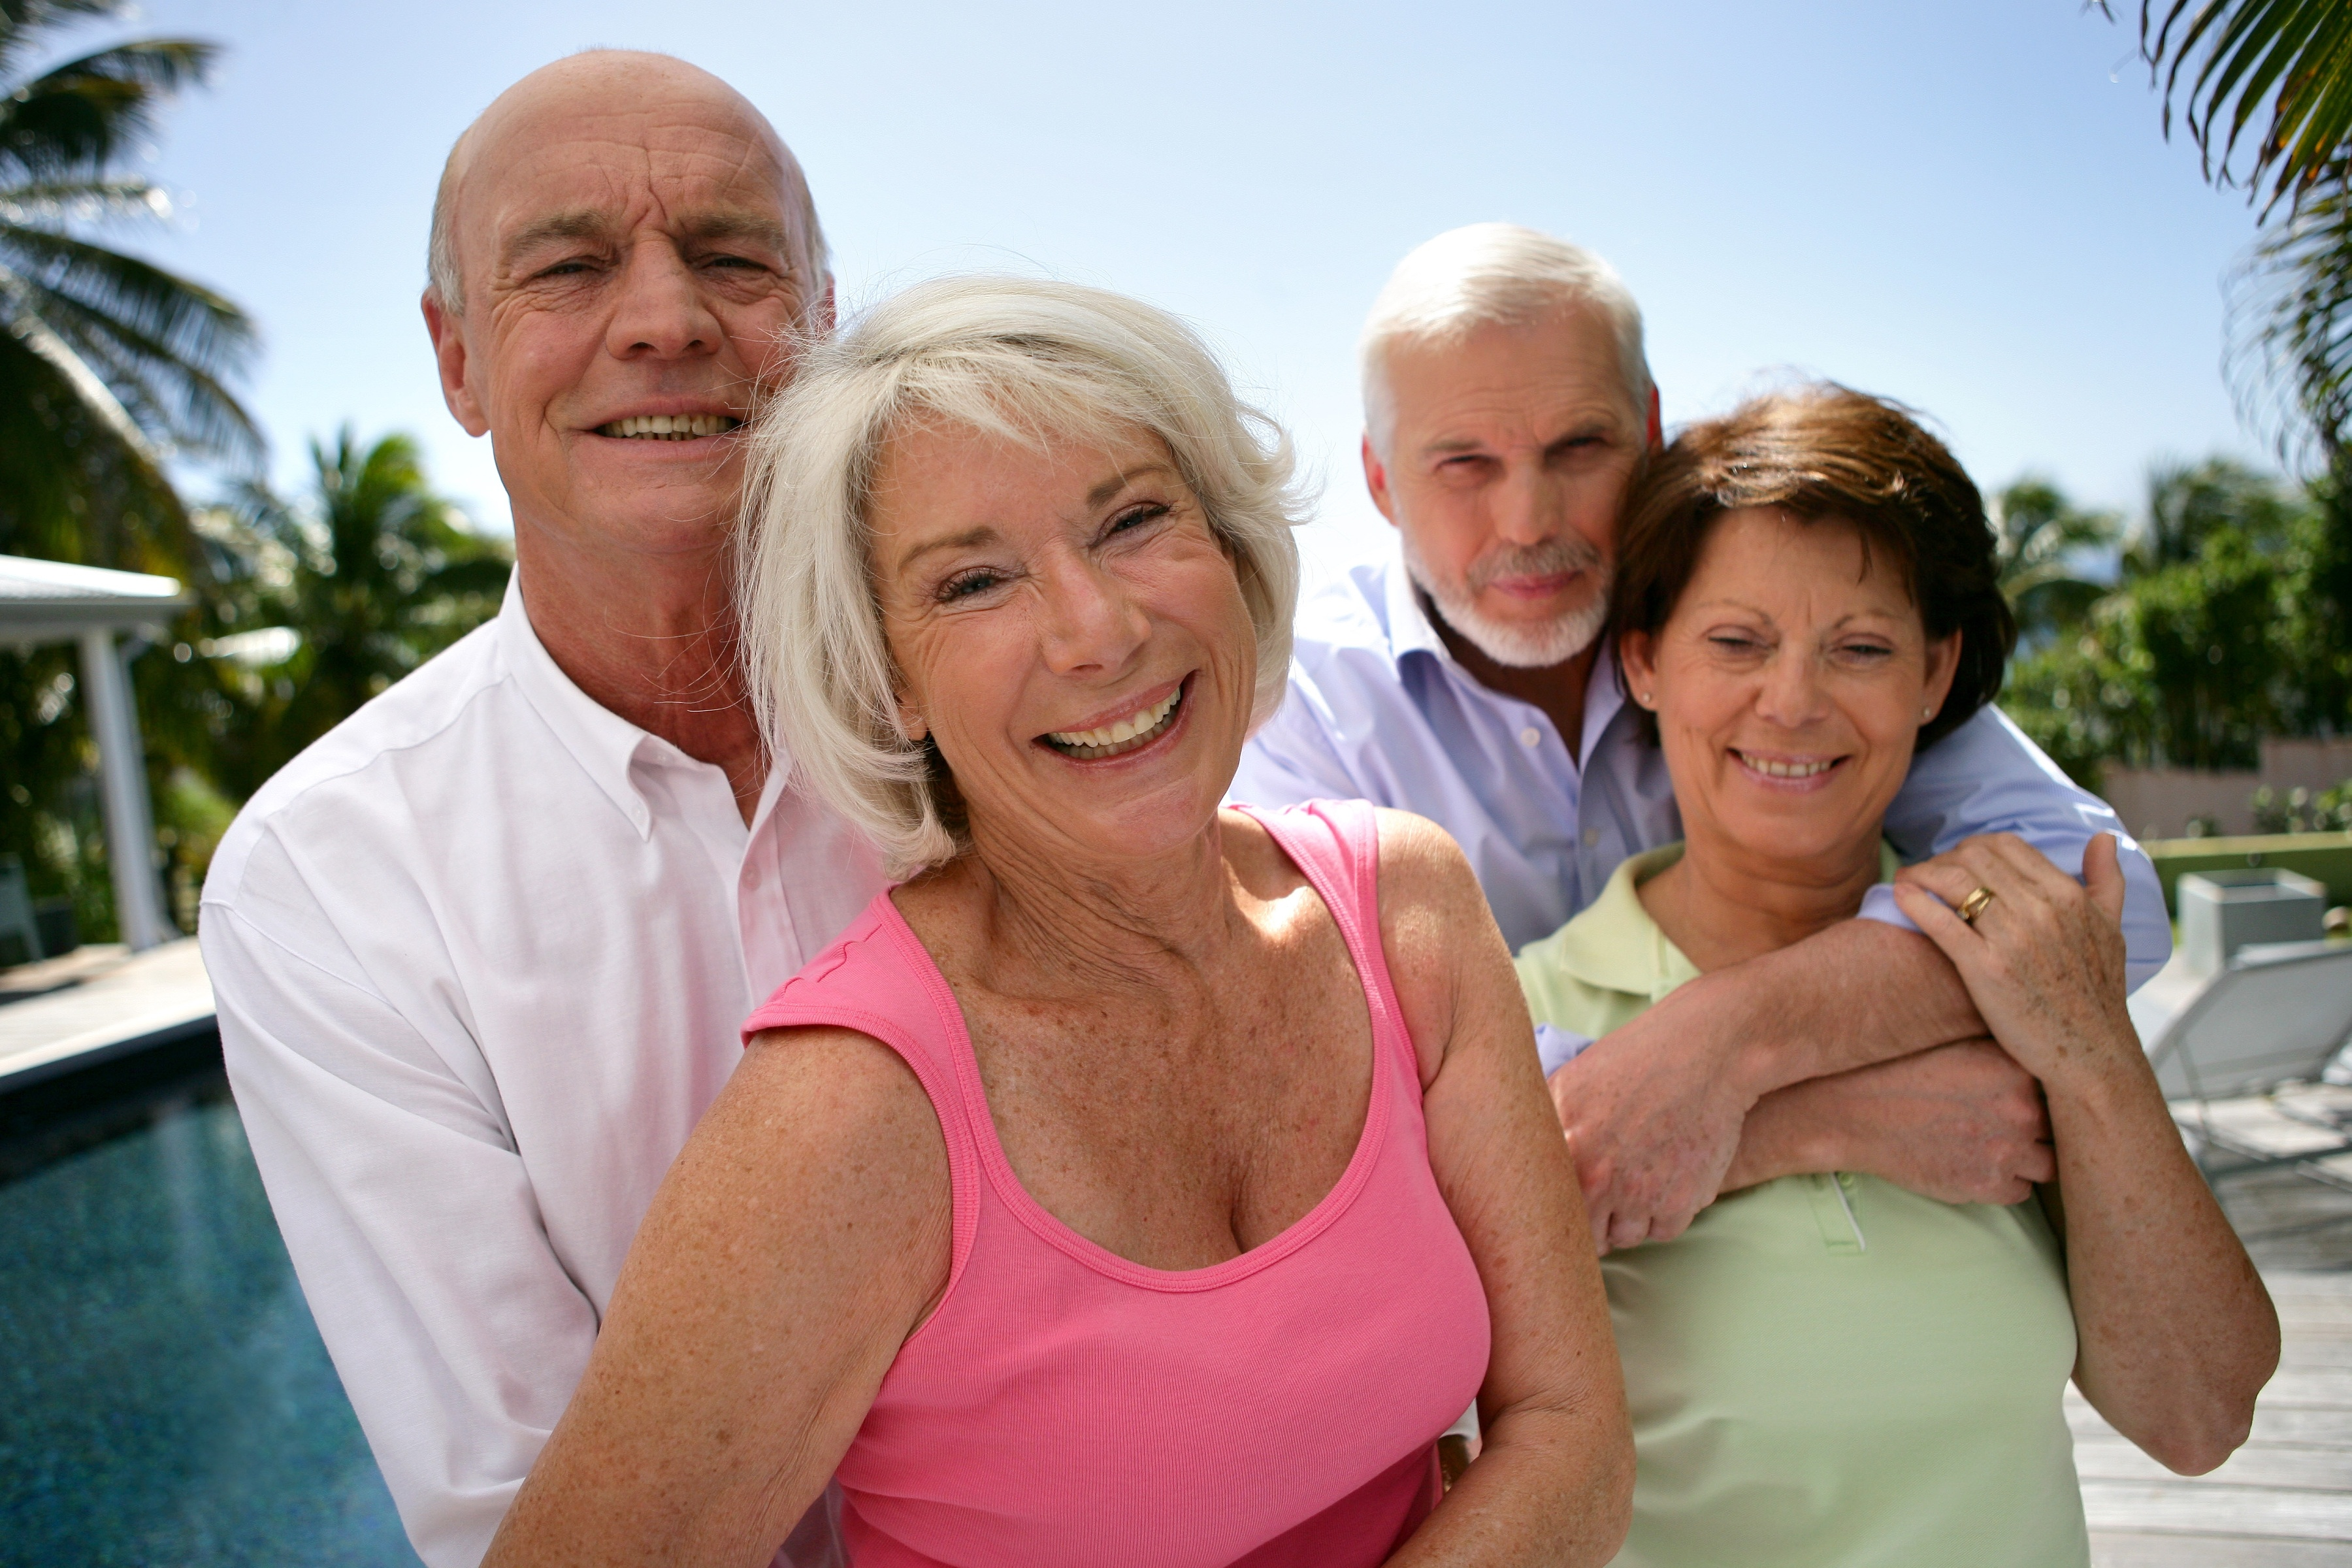 5_Things_Seniors_Can_Do_to_Age_Well.jpg